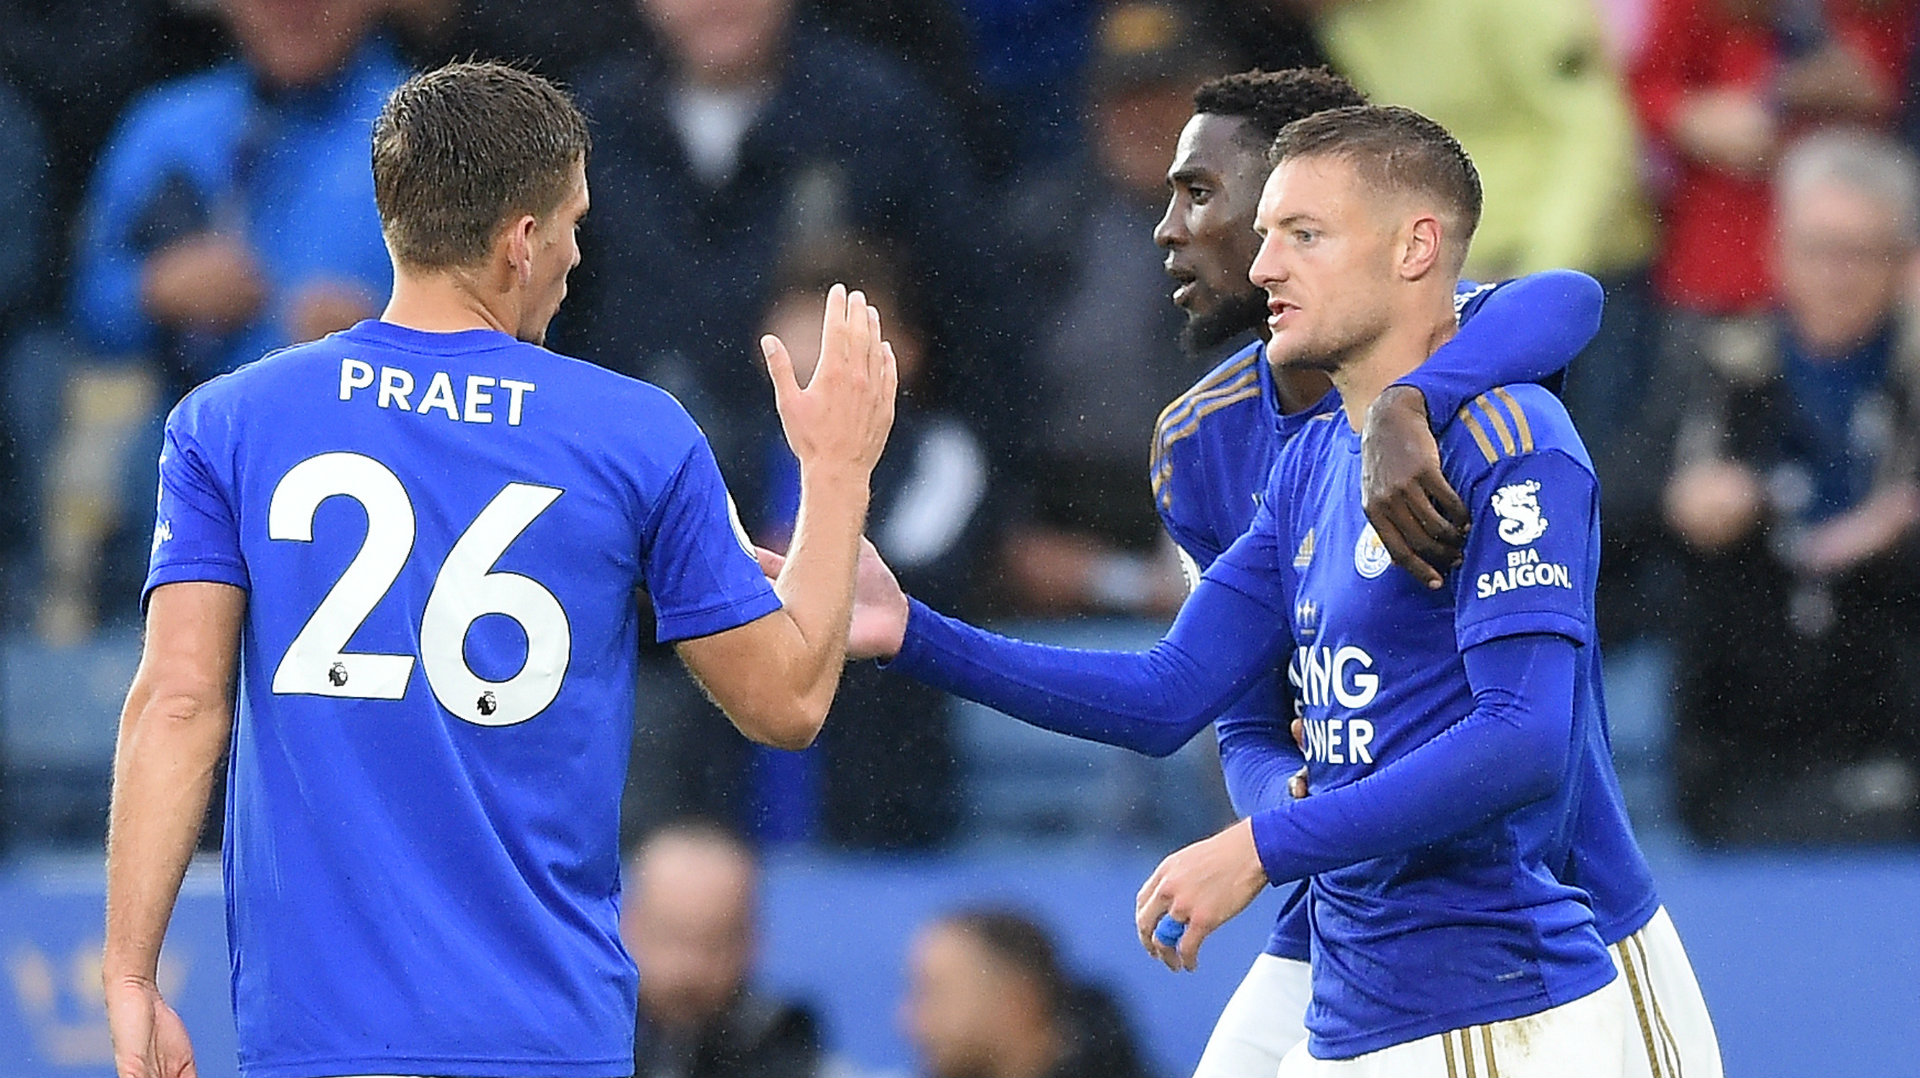 Leicester boss Rodgers leaps to defend Choudhury